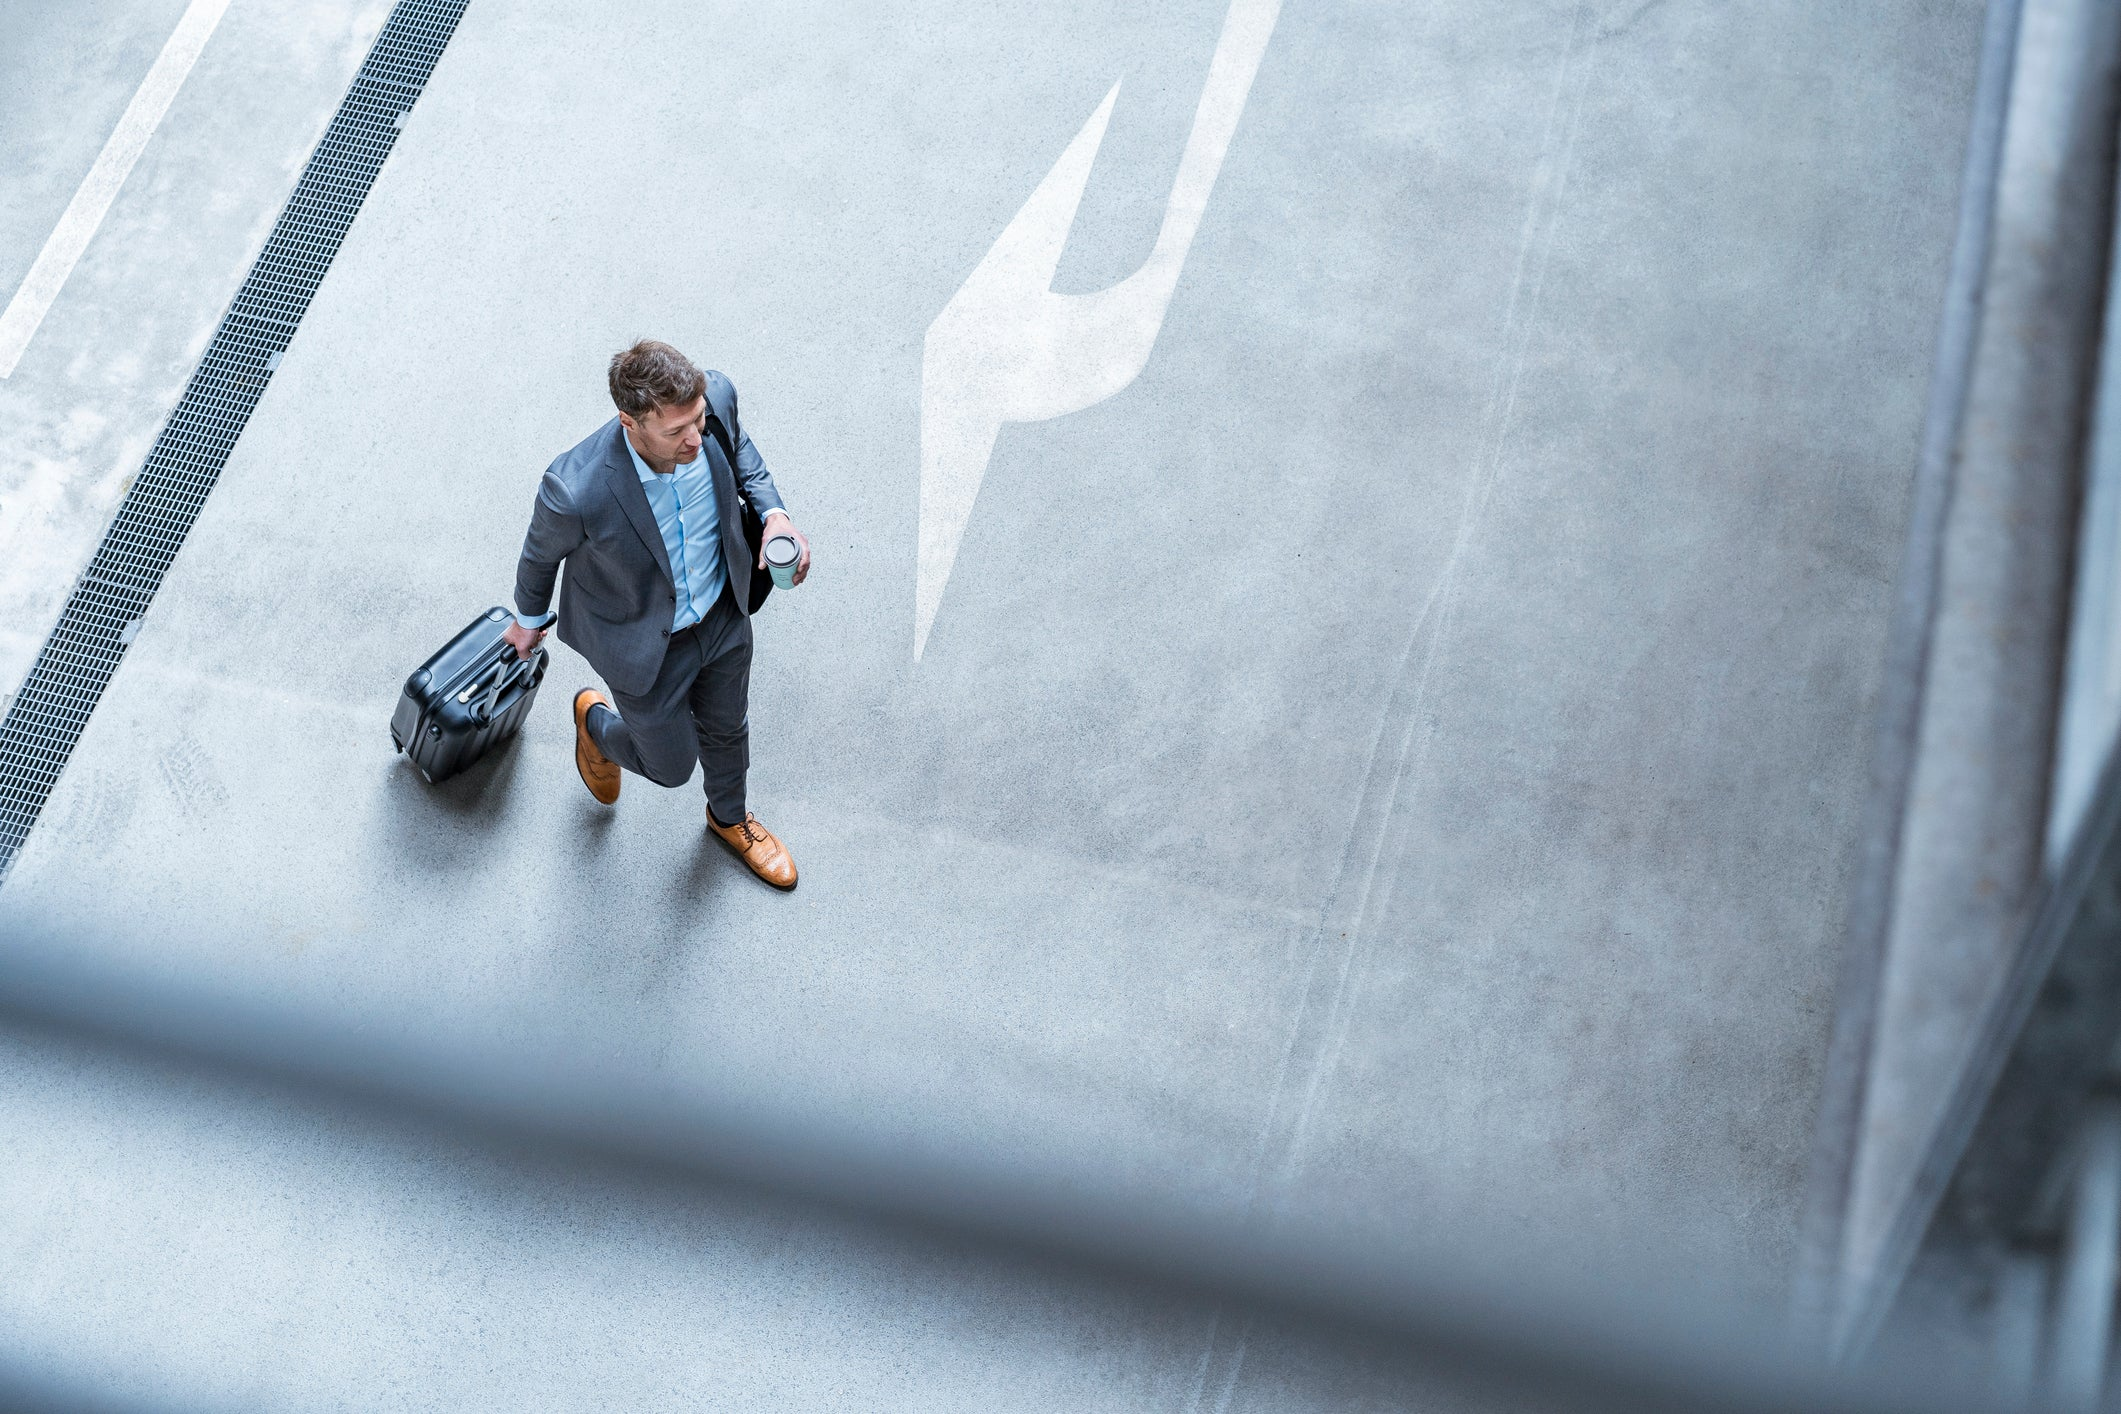 Business travel is recovering from the pandemic sooner than expected